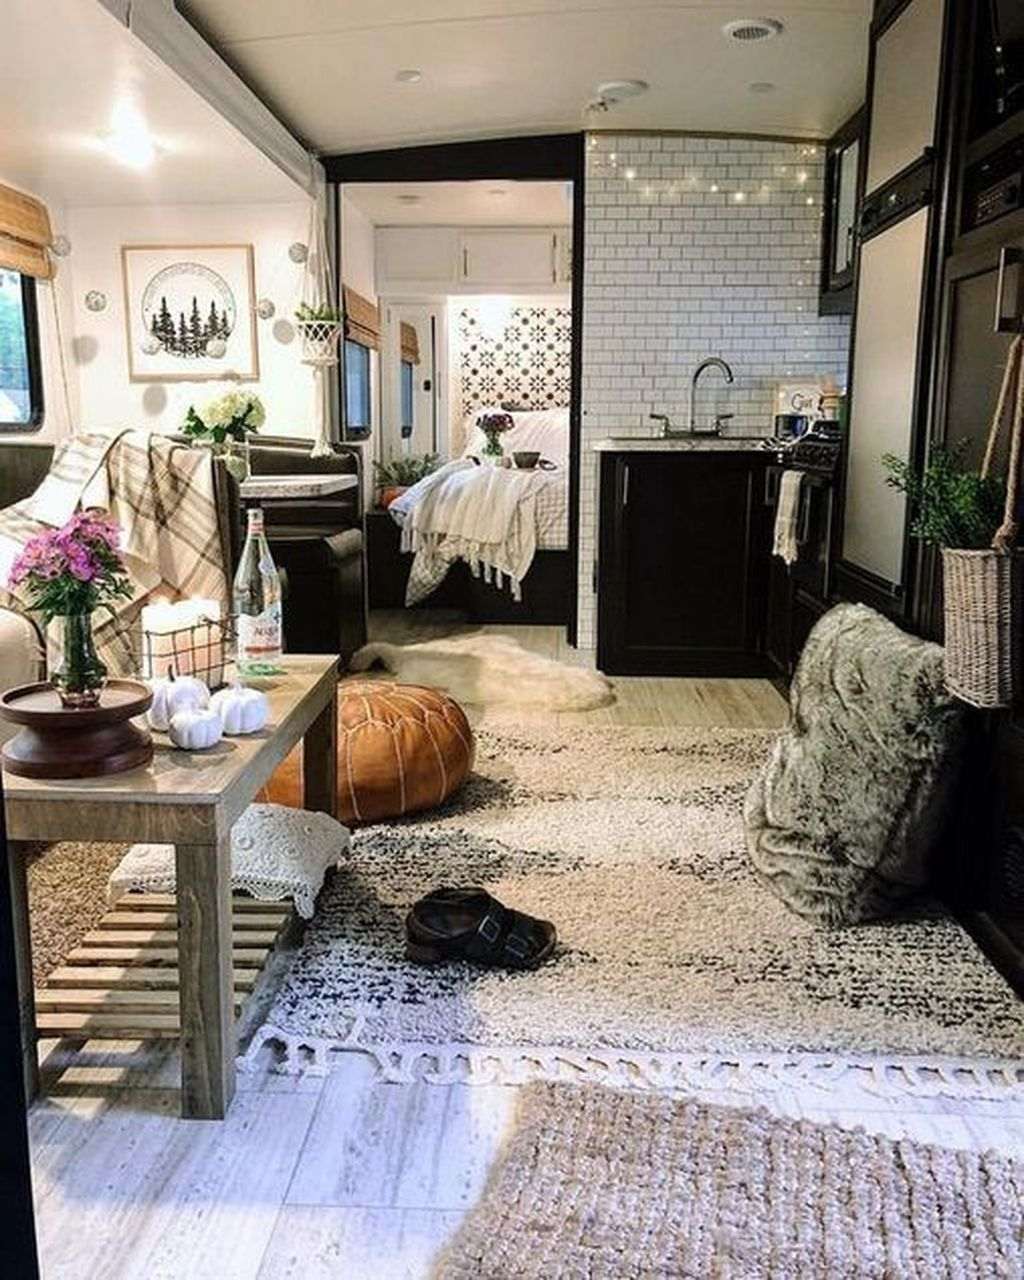 32 Unique Rv Camper Remodel Ideas On A Budget - HOMYFEED #rvliving